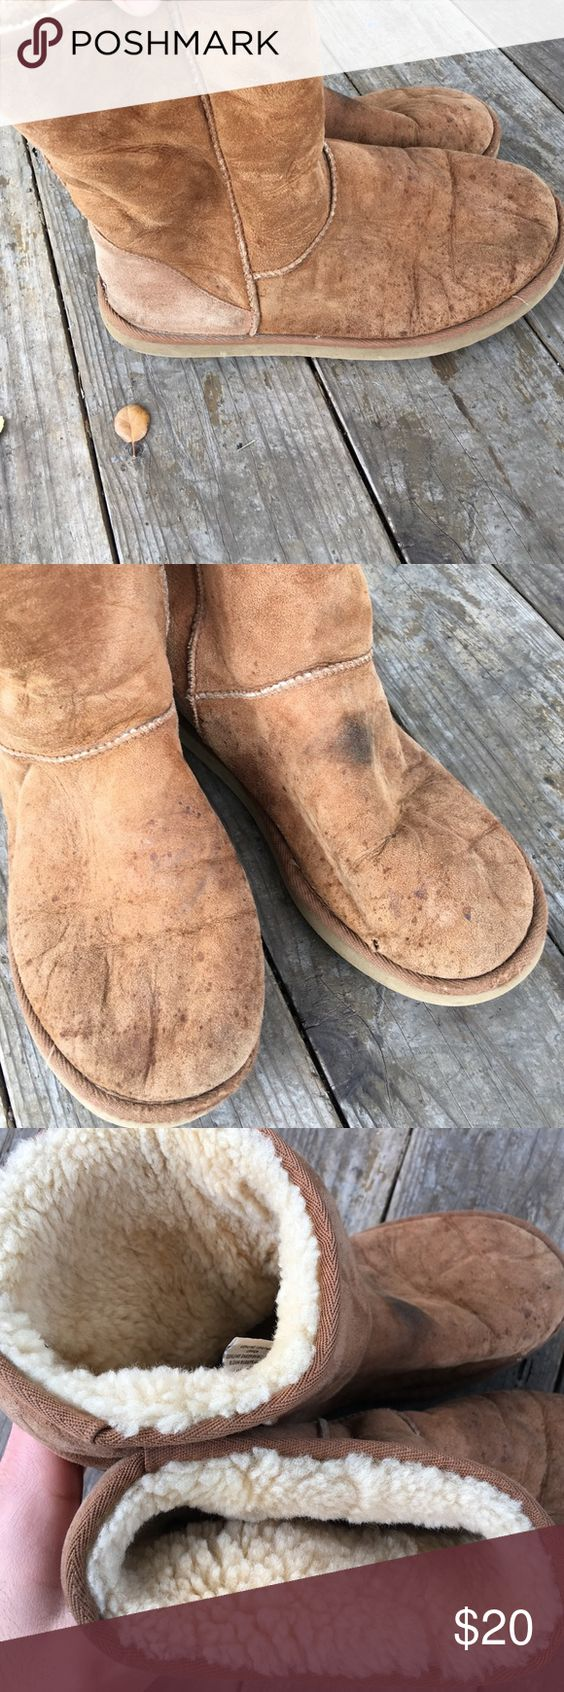 UGG short boots (293) Signs of wear, scuff marks, discoloration,  stains, small tear on shoe, can be cleaned and repaired! UGG Shoes Rain & Snow Boots